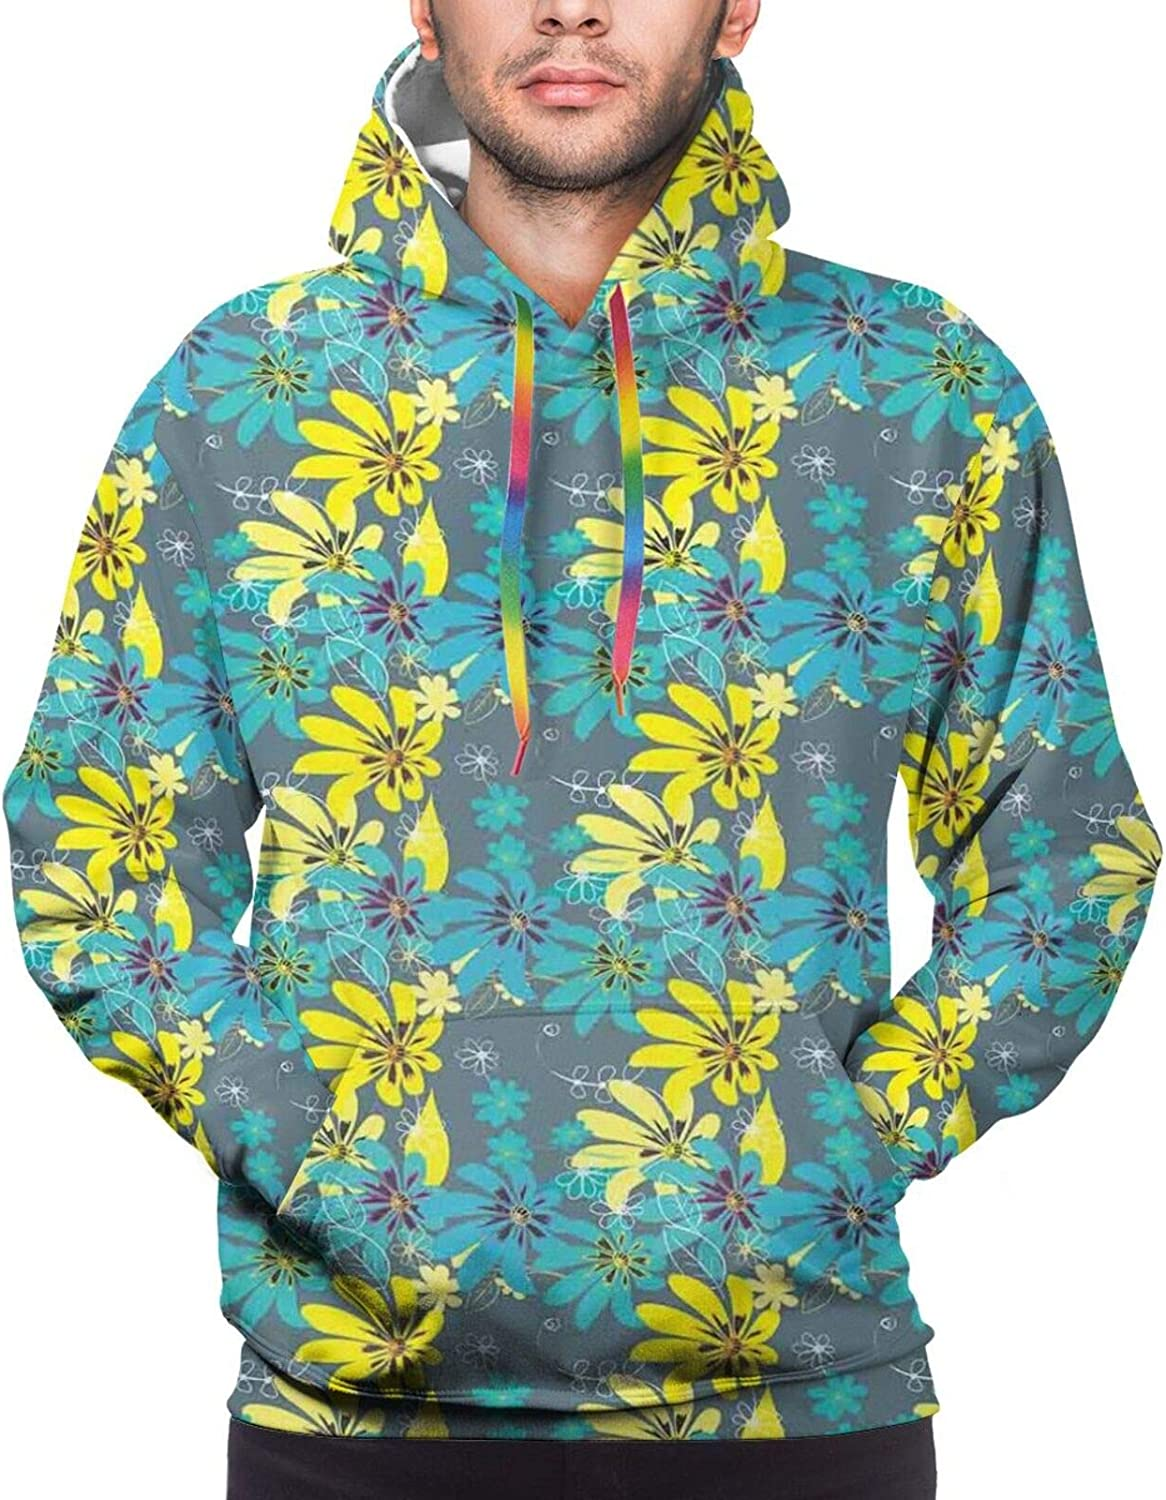 Men's Hoodies Sweatshirts,Abstract Flowers Round Brush Stroke Effect Floral Hand Drawn Style